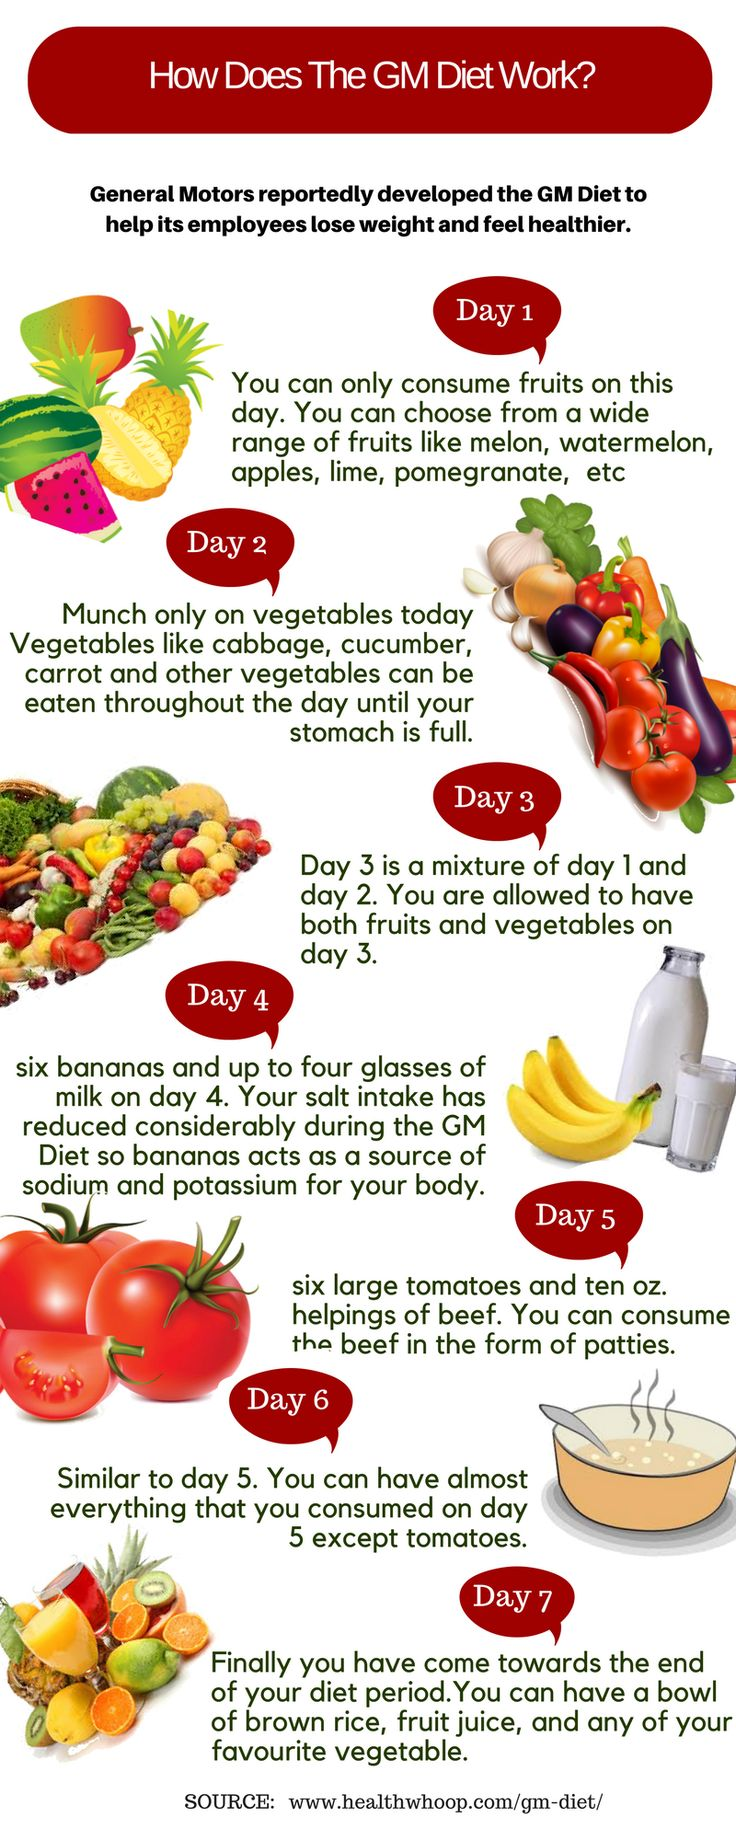 Vce ne 20 nejlepch npad na tma gm diet plans na pinterestu httphealthwhoopgm diet the gm diet may sound a little cruel to you but if you follow it religiously for the first two days then it will become ccuart Image collections